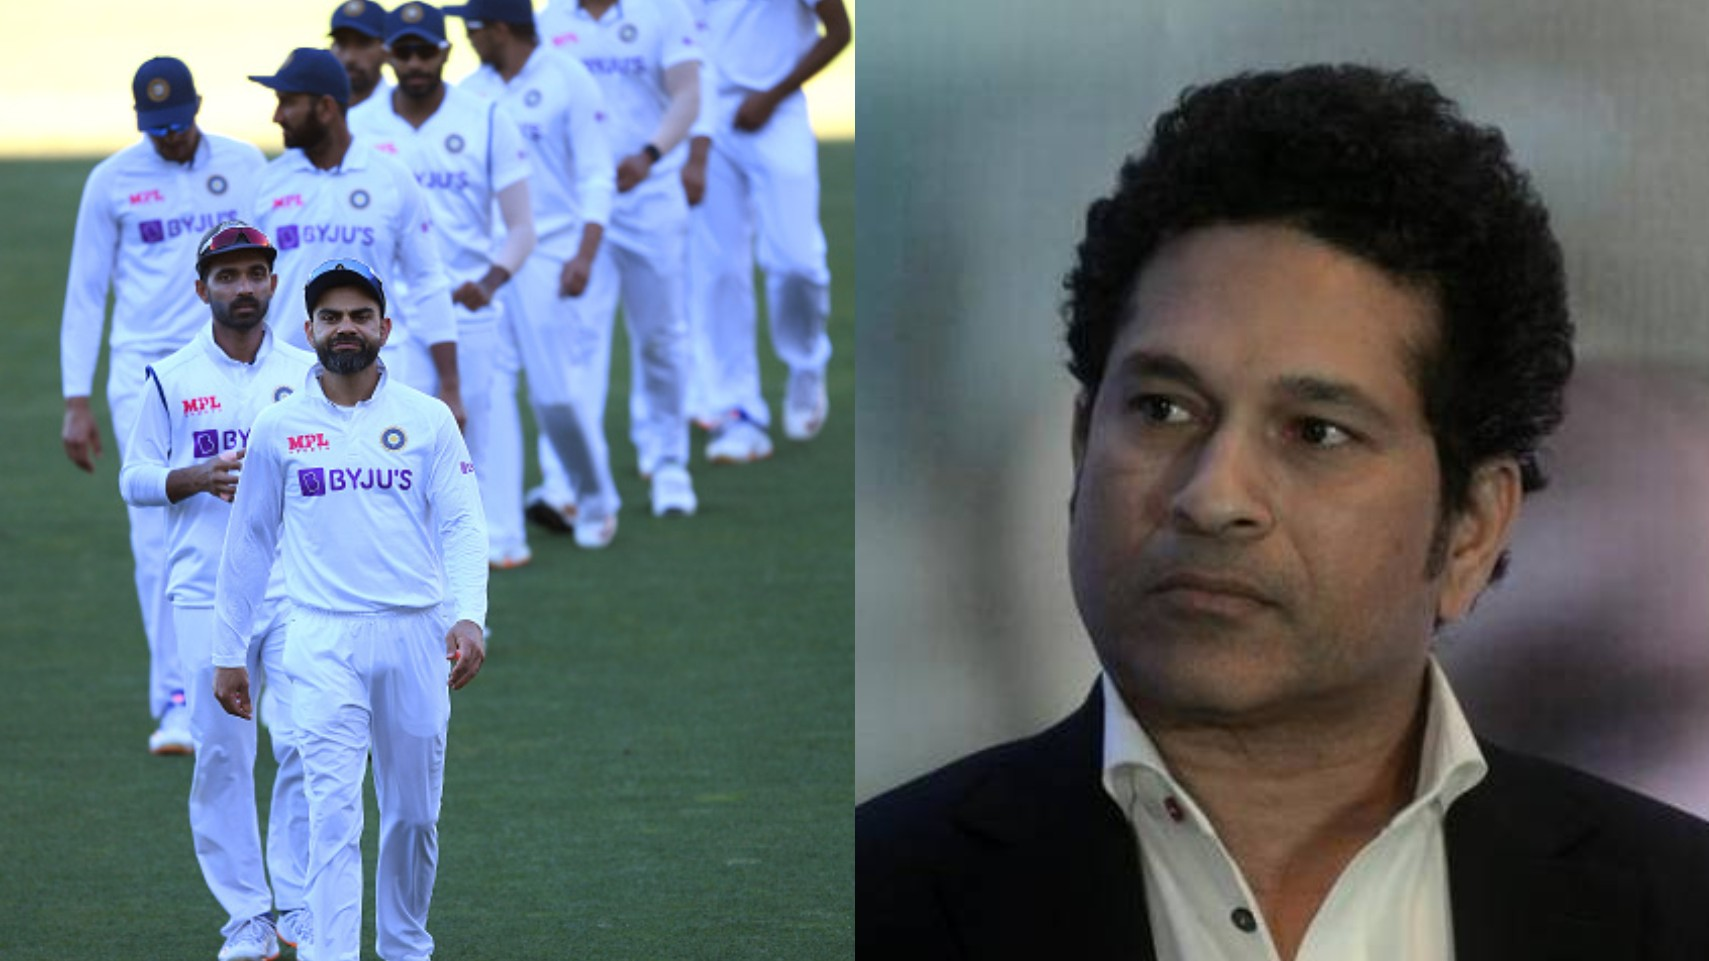 AUS v IND 2020-21: Sachin Tendulkar suggests India must do something 'magnificent' to overcome Adelaide setback